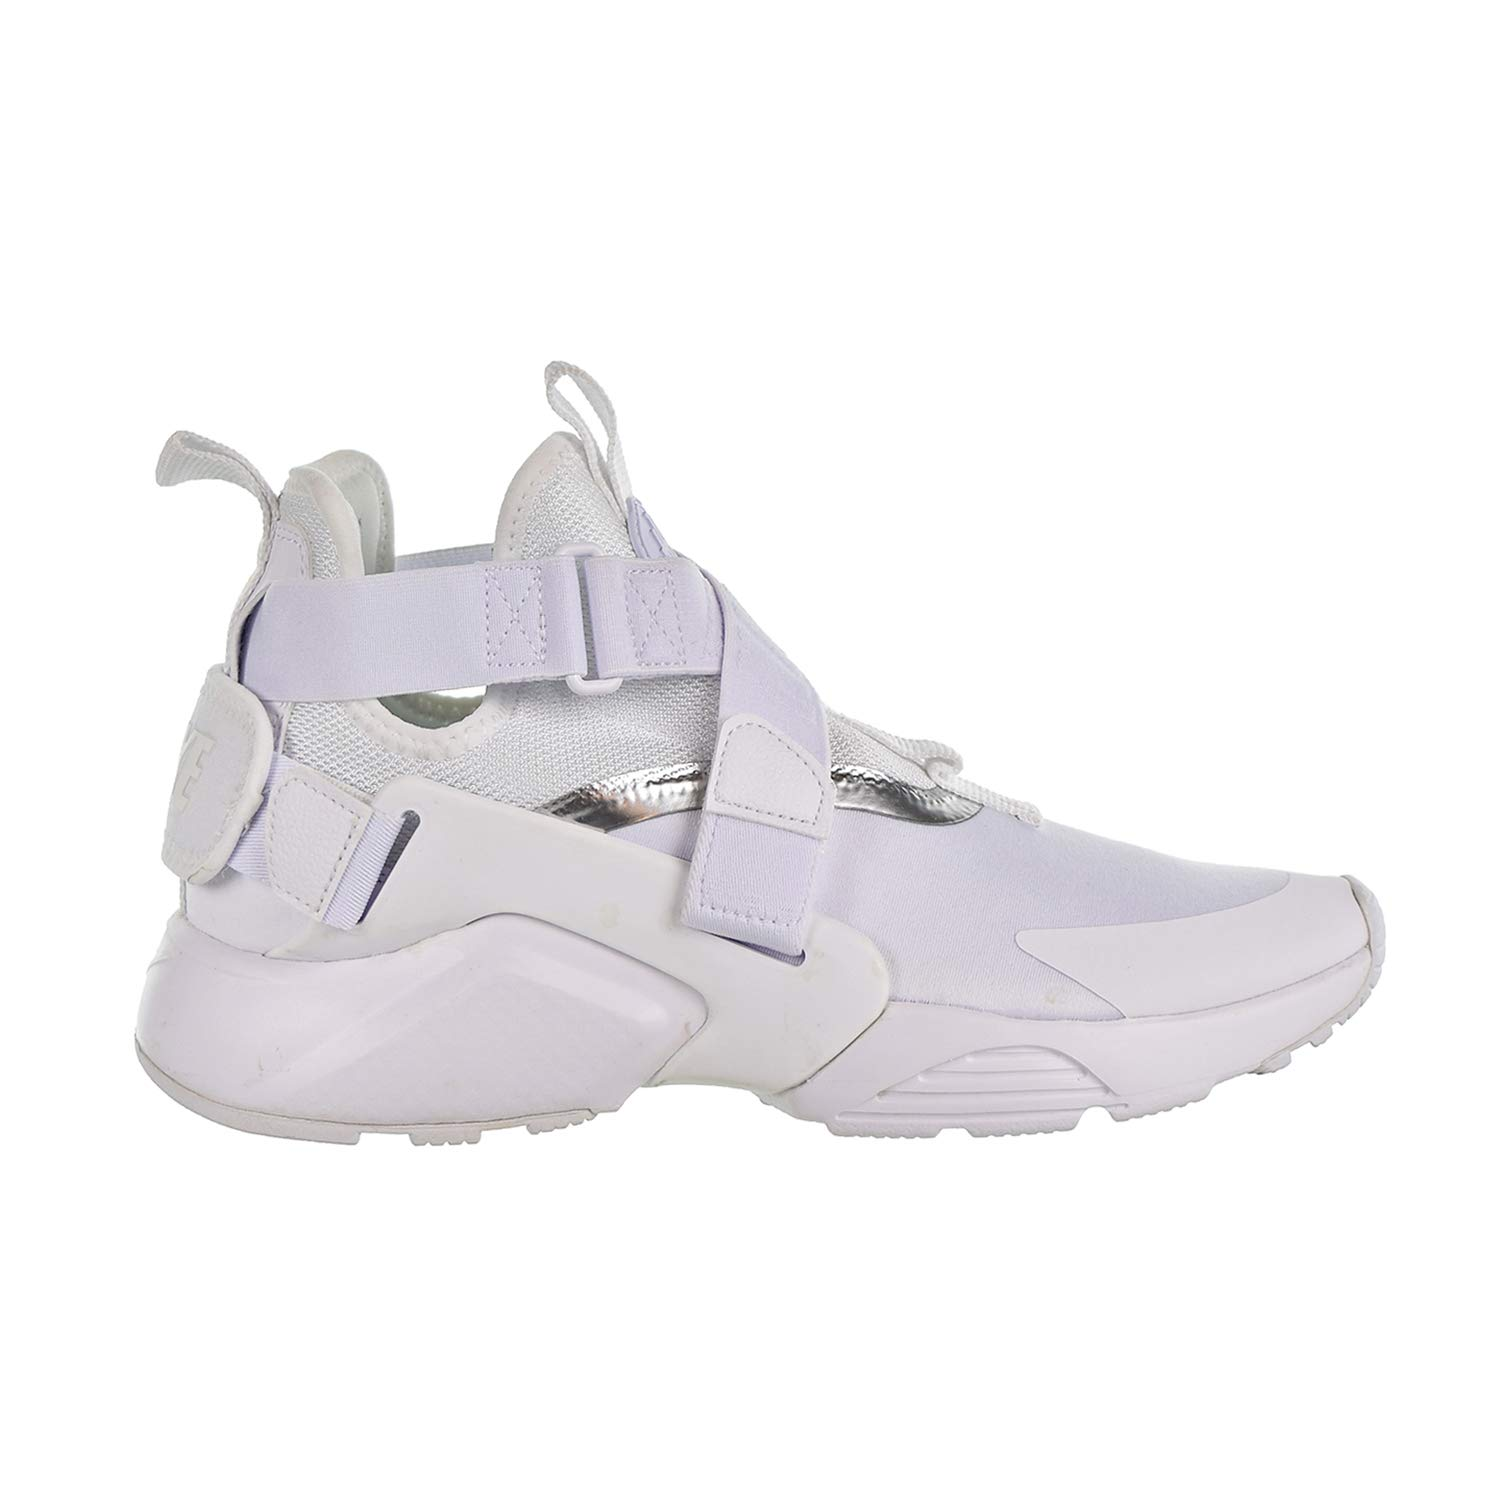 sale wholesale online footwear Nike Huarache City (GS) Youth Unisex Fashion Sneakers, Size 6.5, Color  White/White Metallic/Silver